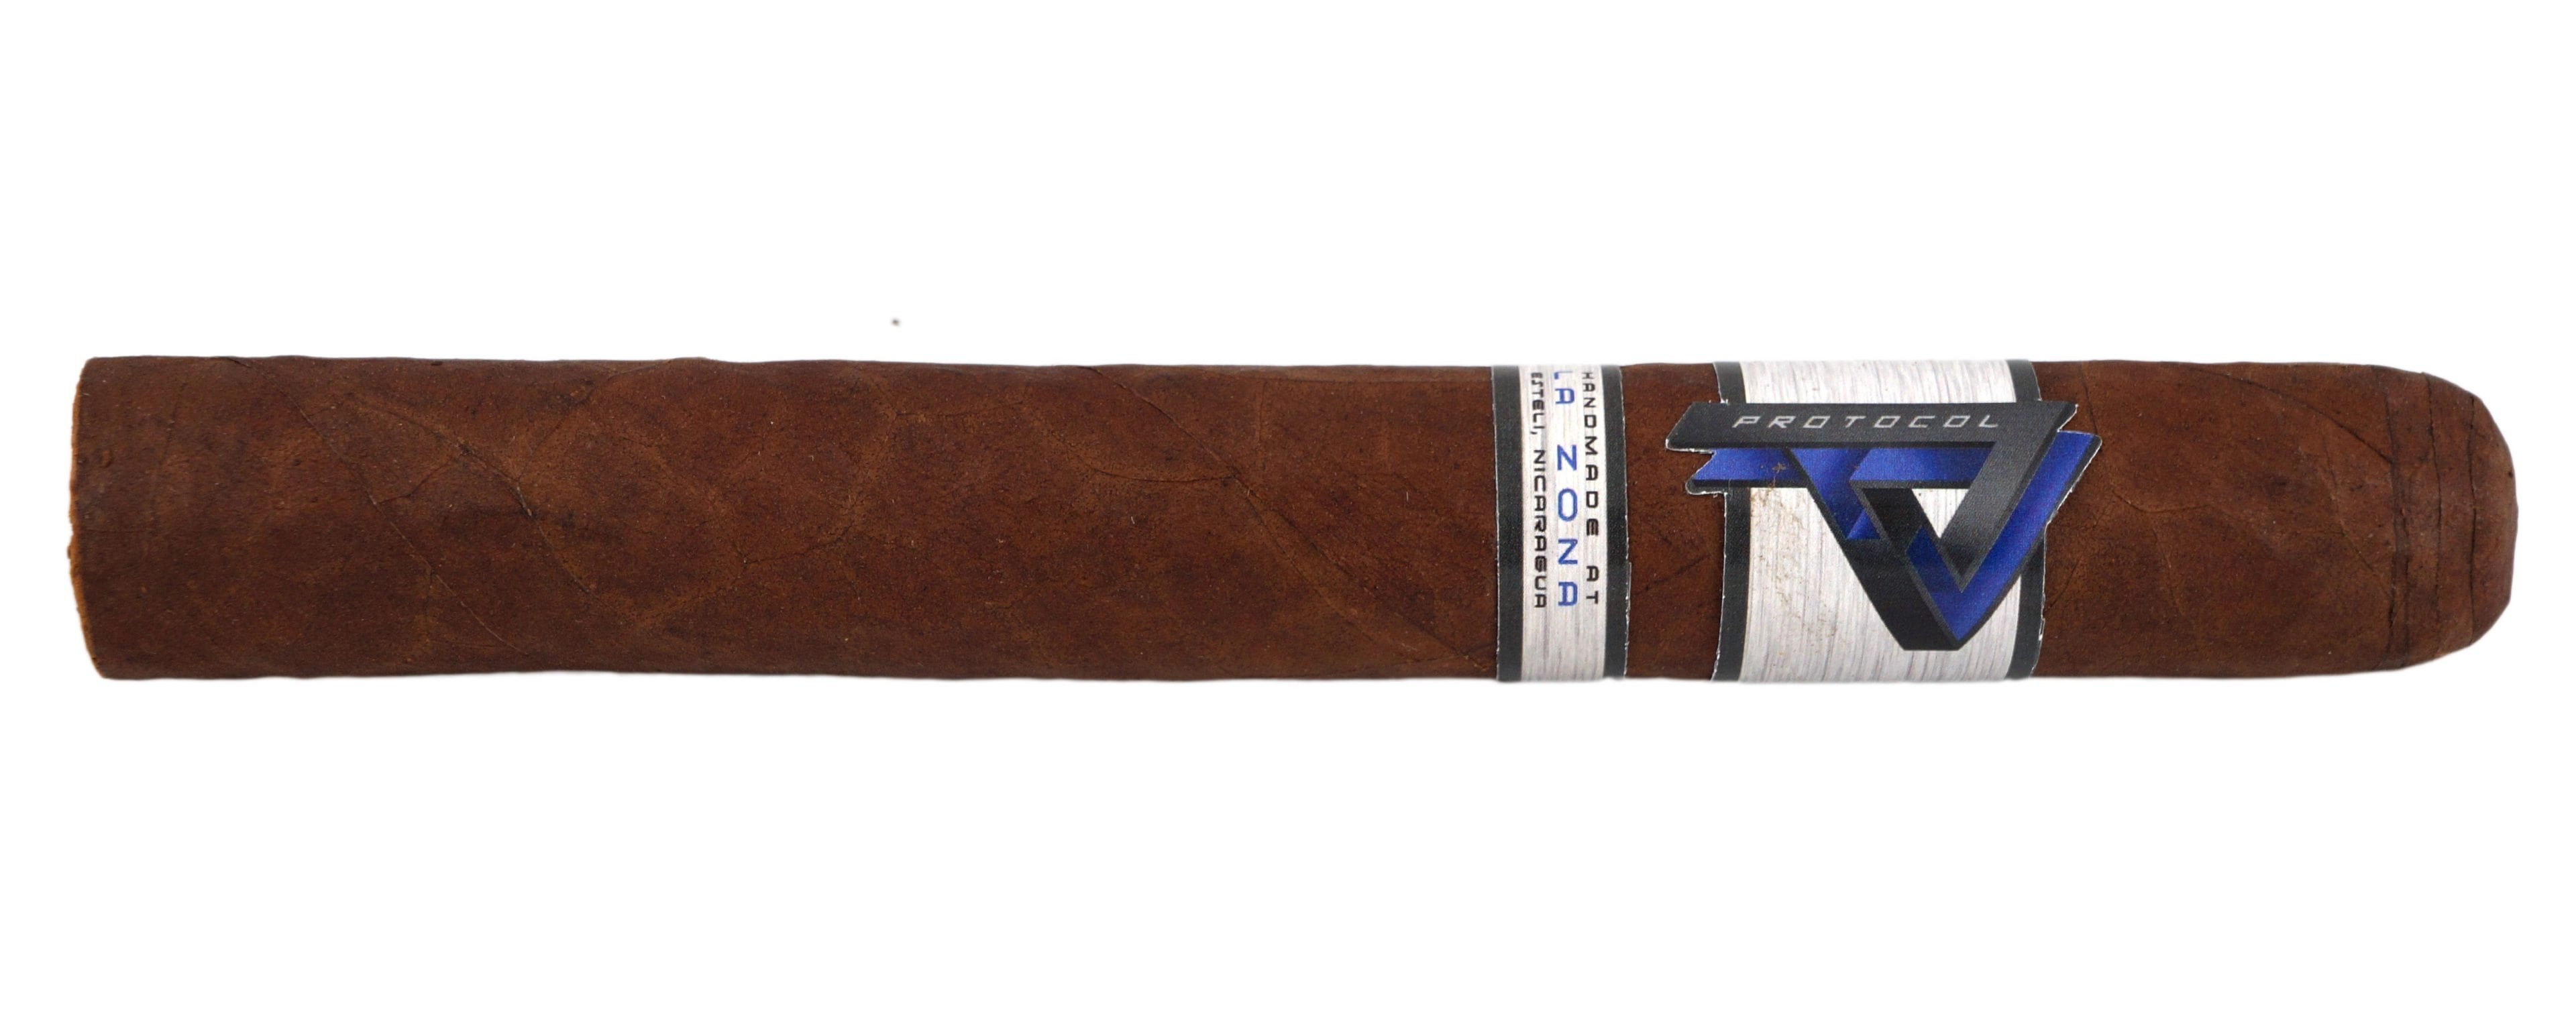 Blind Cigar Review: Cubariqueno | Protocol Toro